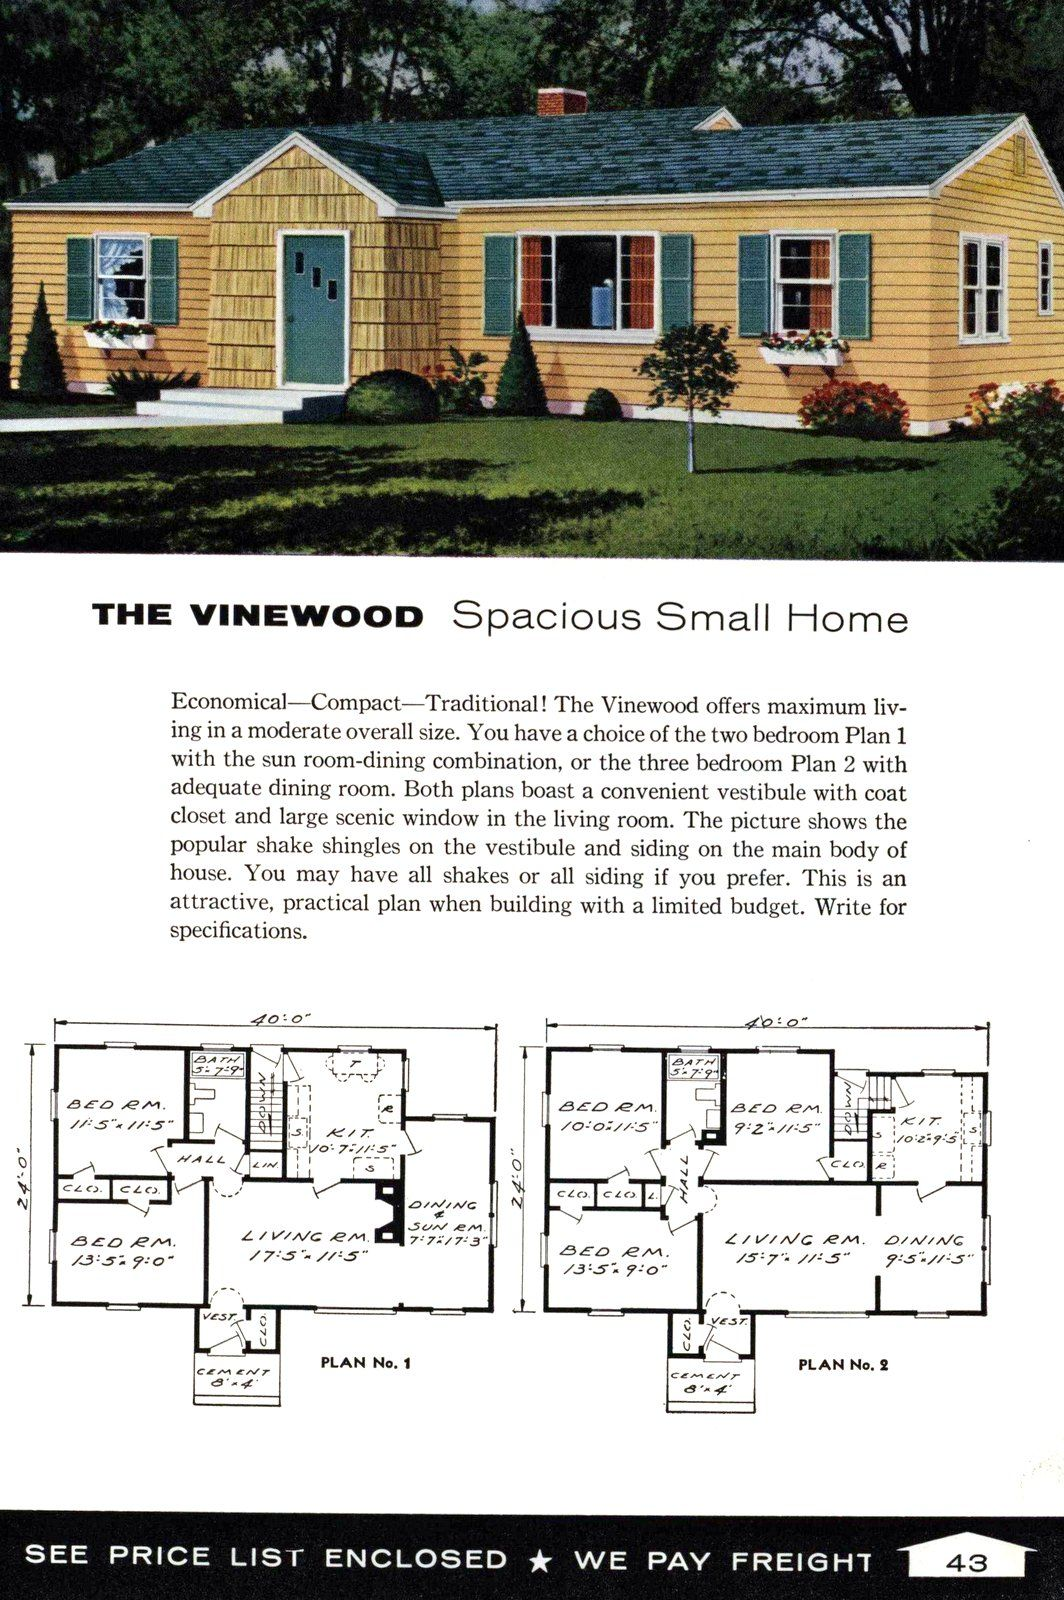 See 125 vintage '60s home plans used to design & build millions of mid century houses across America